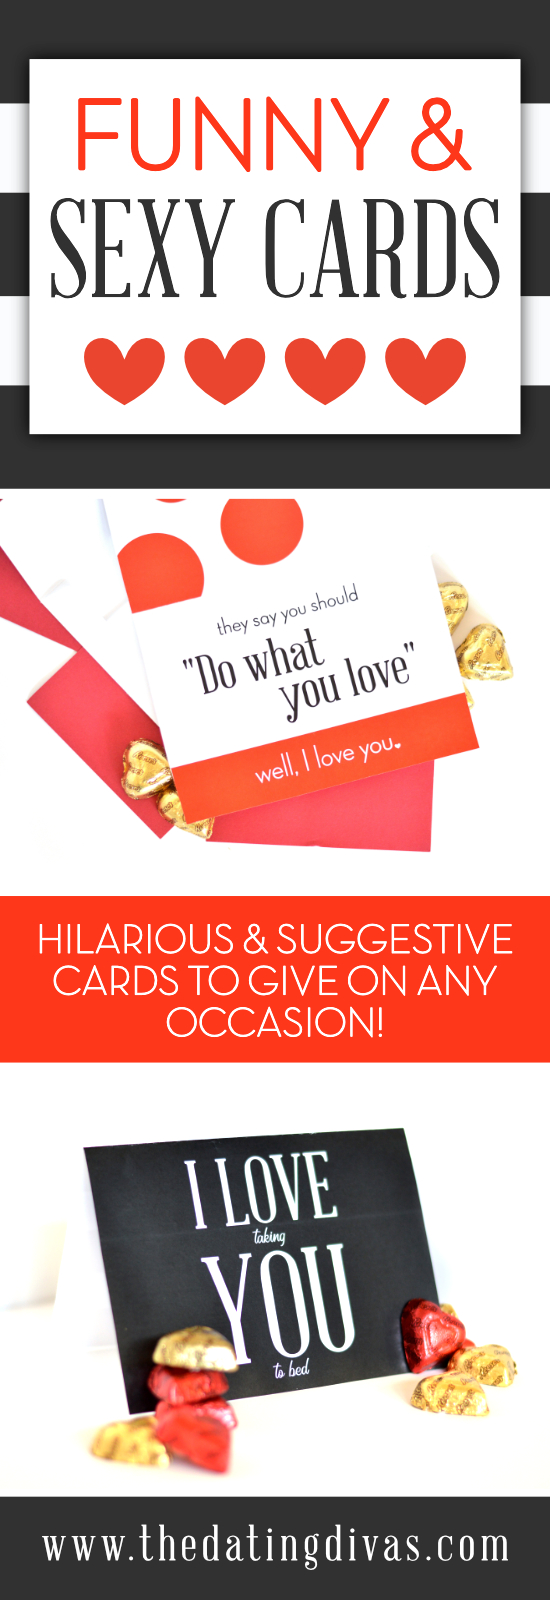 Sexy and funny cards to give your spouse for any special occasion. Hilarious and suggestive card ideas are perfect last minute gifts for a birthday or anniversary! Put a smile on your significant other's face with these FREE sexy and funny printable cards! #TheDatingDivas #funnycards #sexycard #sexyandfunny